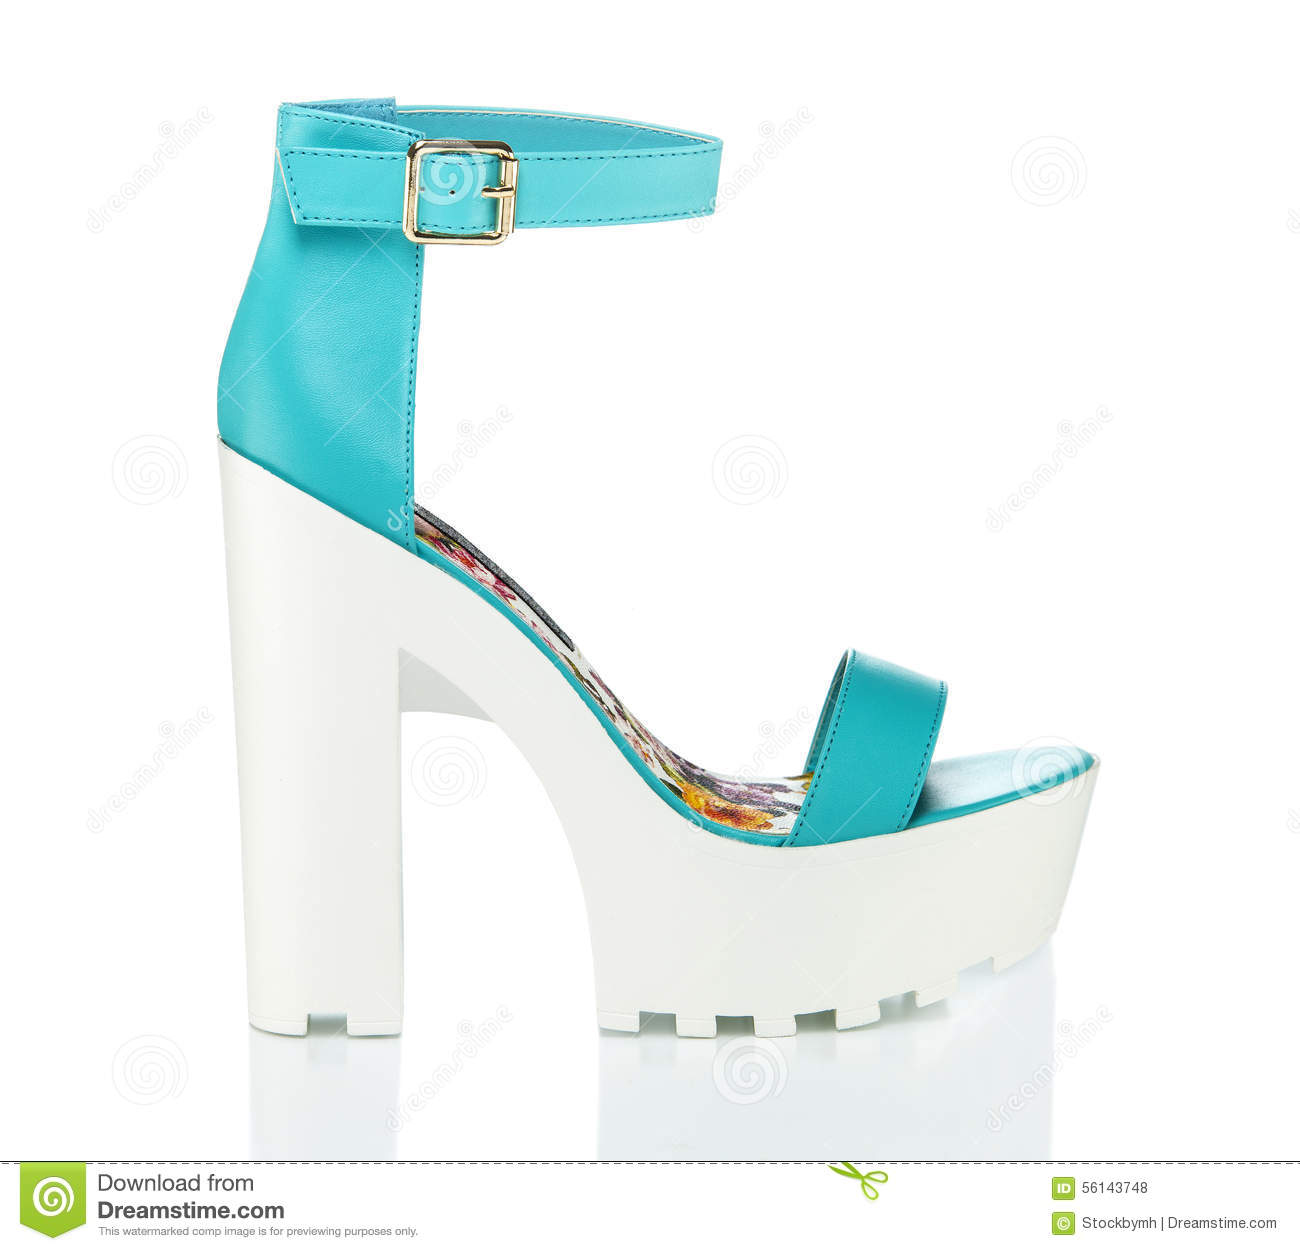 b51418a7c459 Top fashionable high heels shoes with platform and rugged white lug sole  and an ankle-strap. Made of light blue faux leather